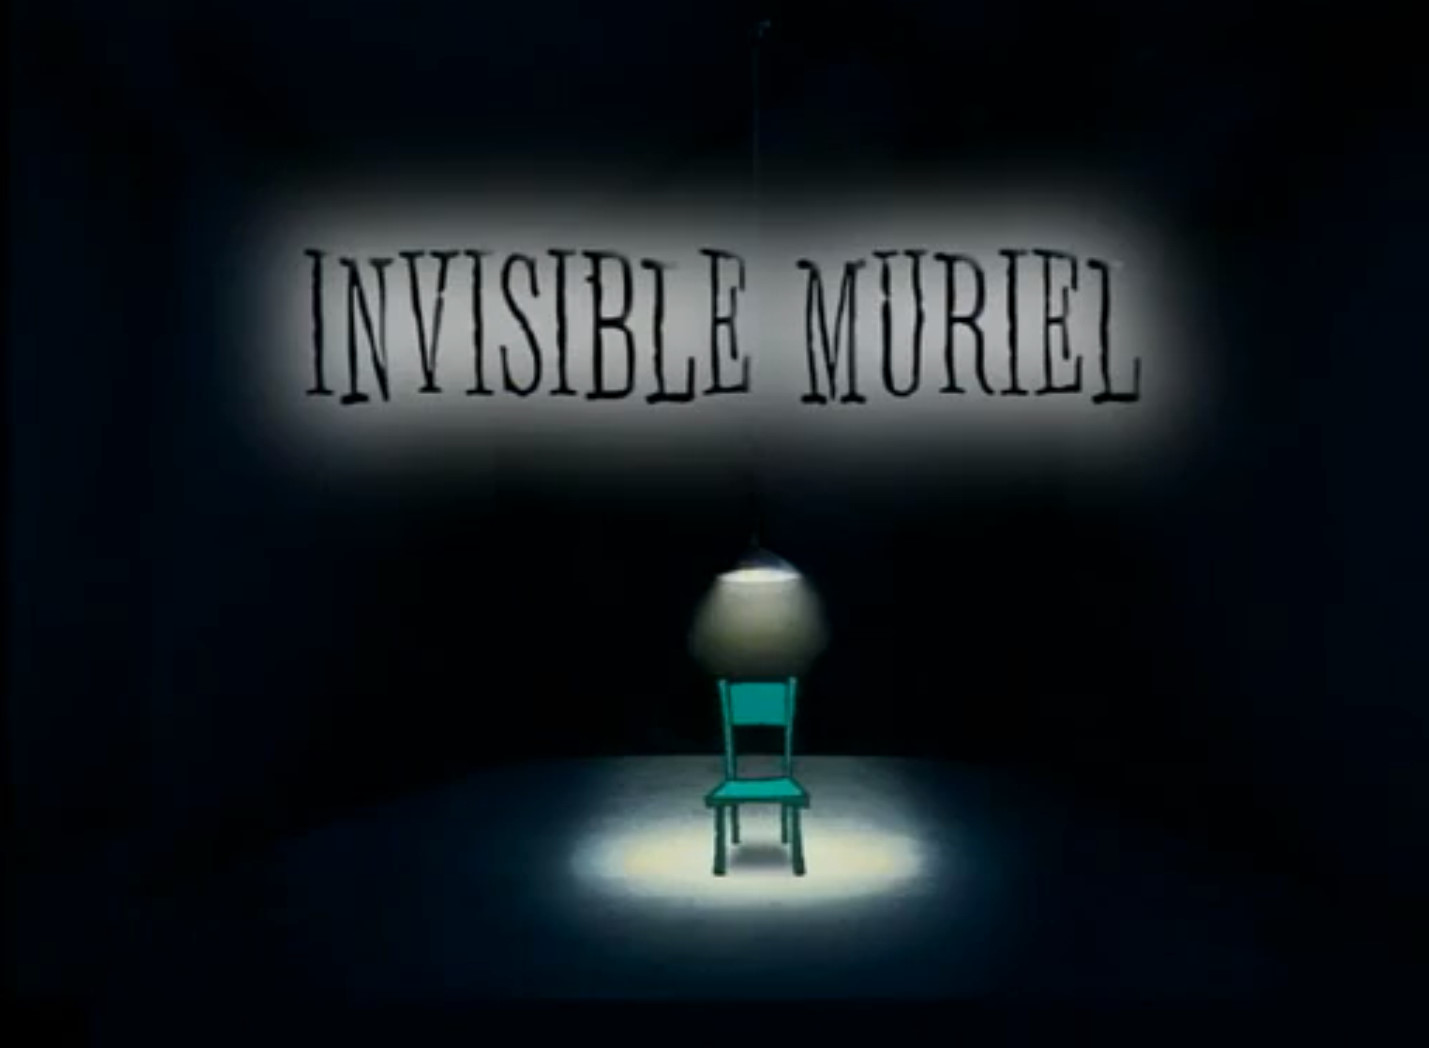 Invisible Muriel (episode)